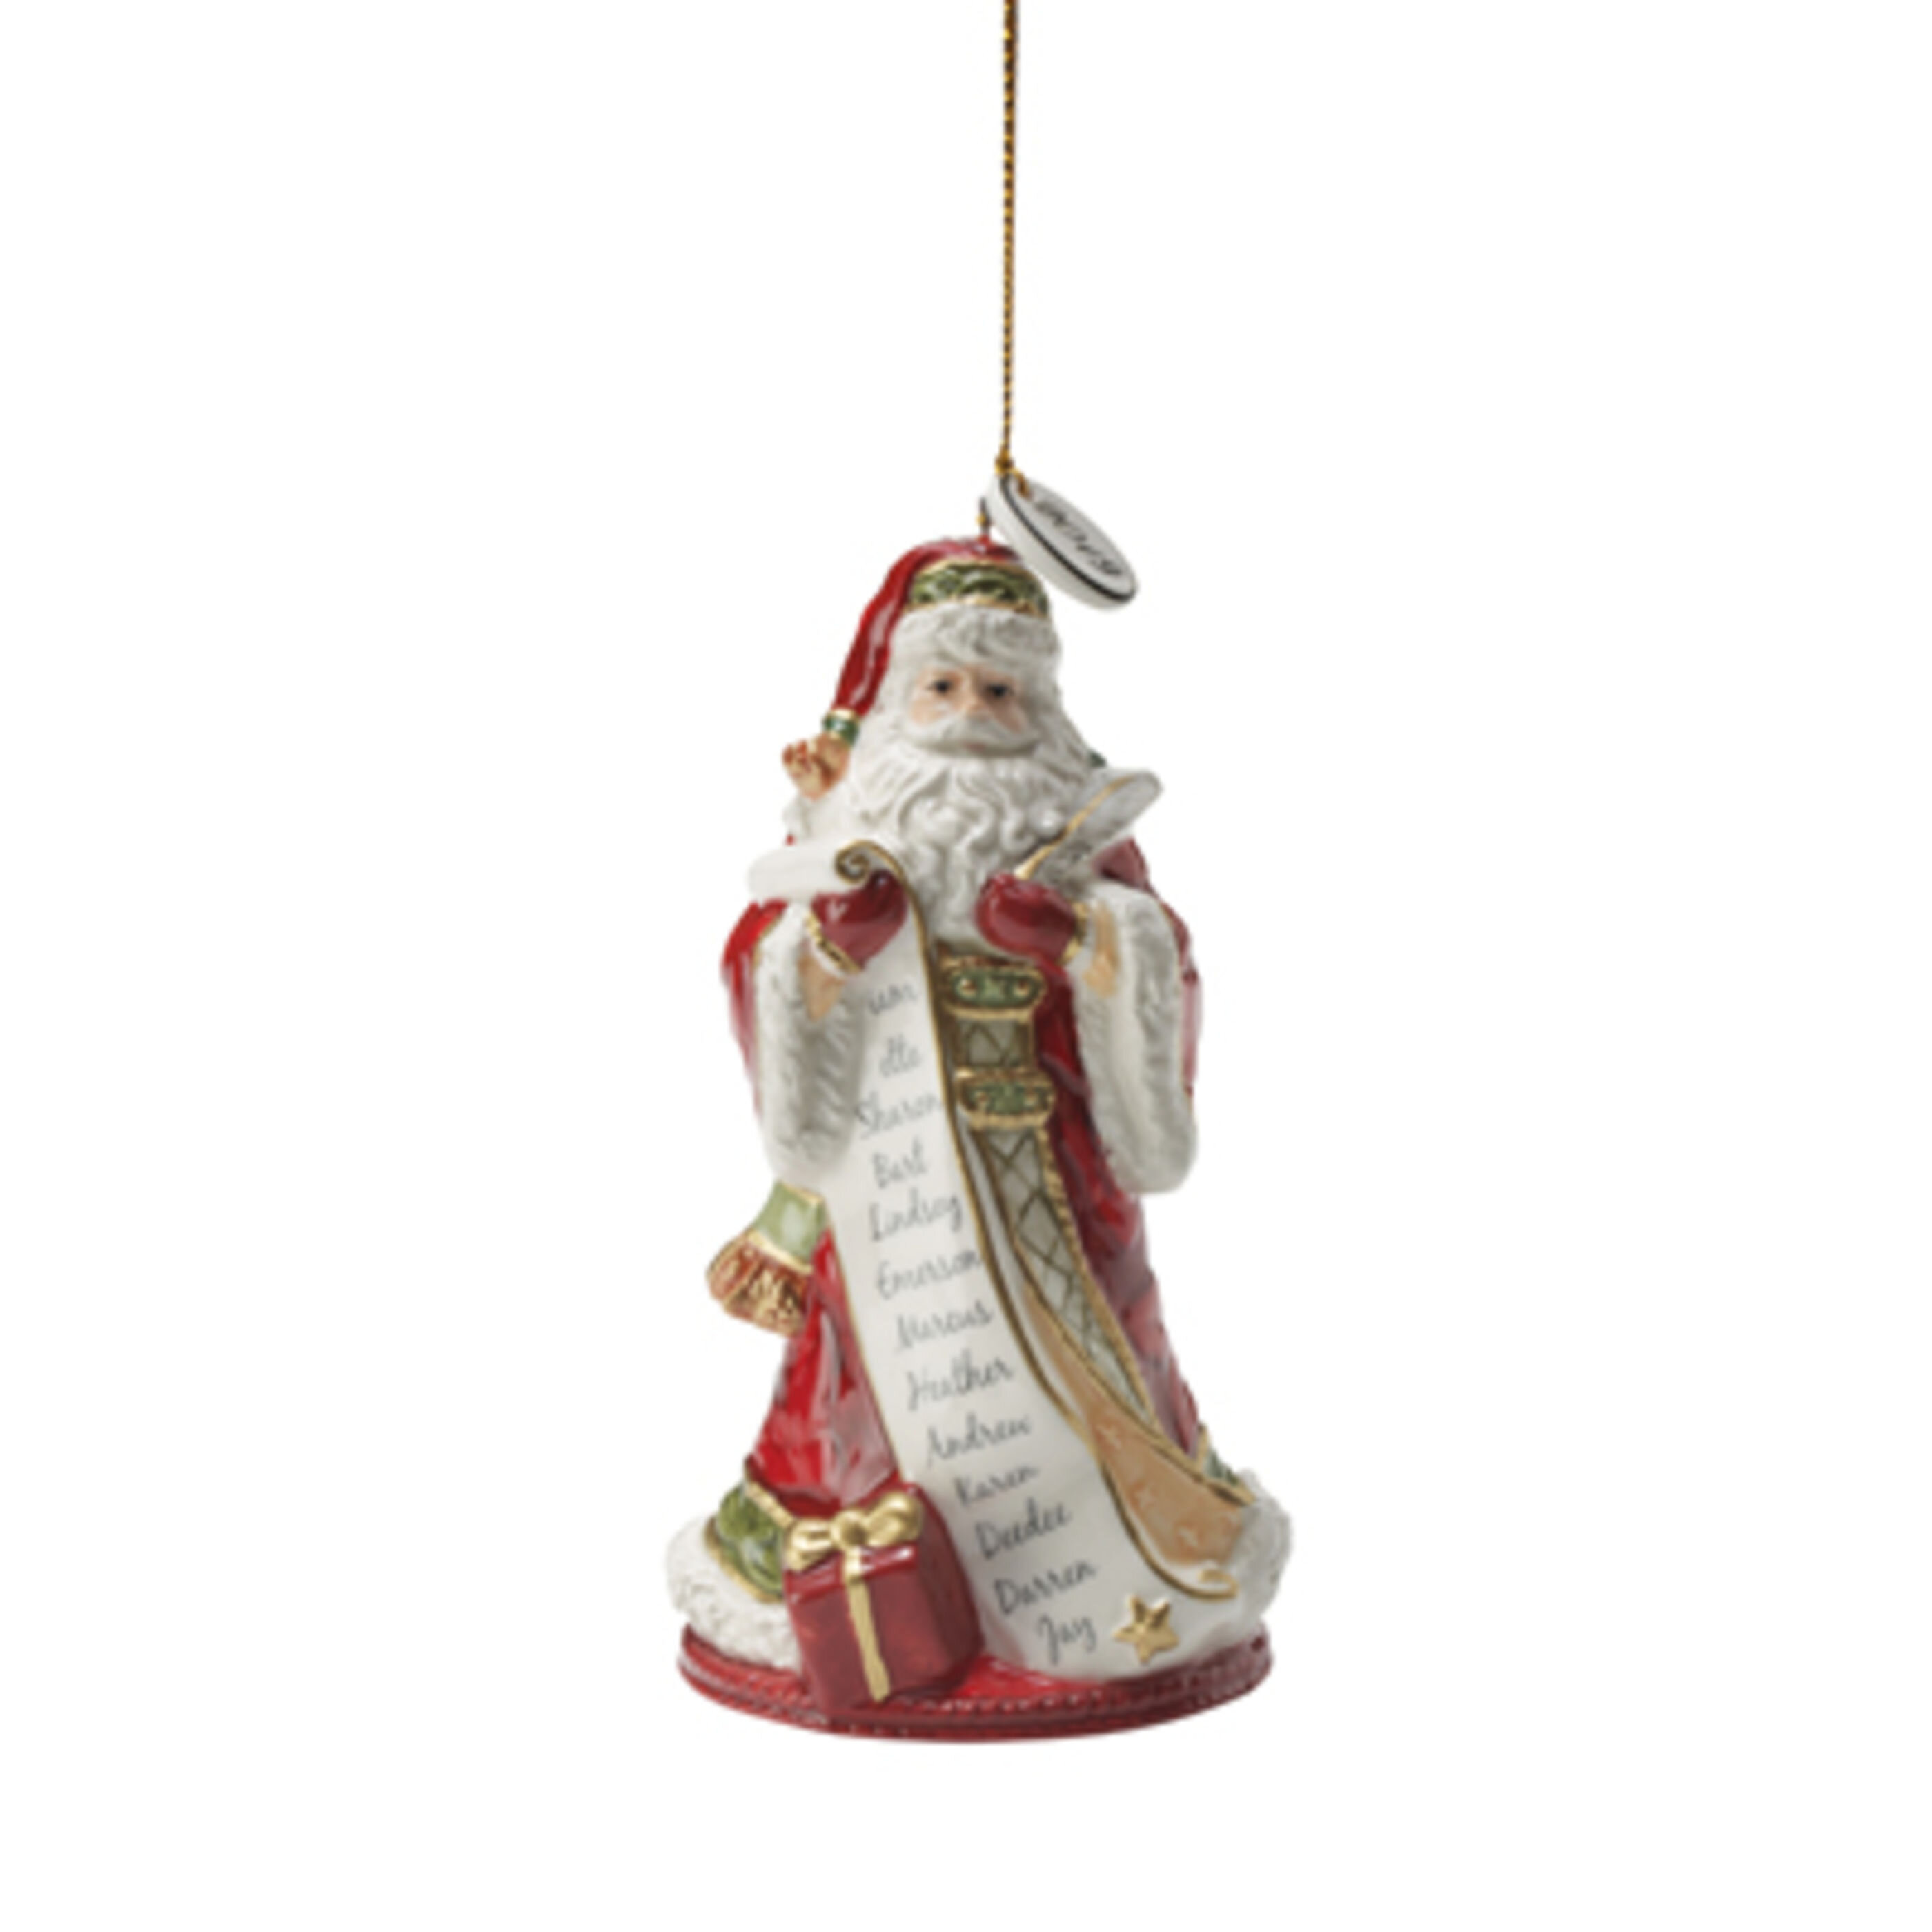 Fitz And Floyd Holiday Home Dated 2020 Bell Hanging Figurine Ornament Reviews Wayfair